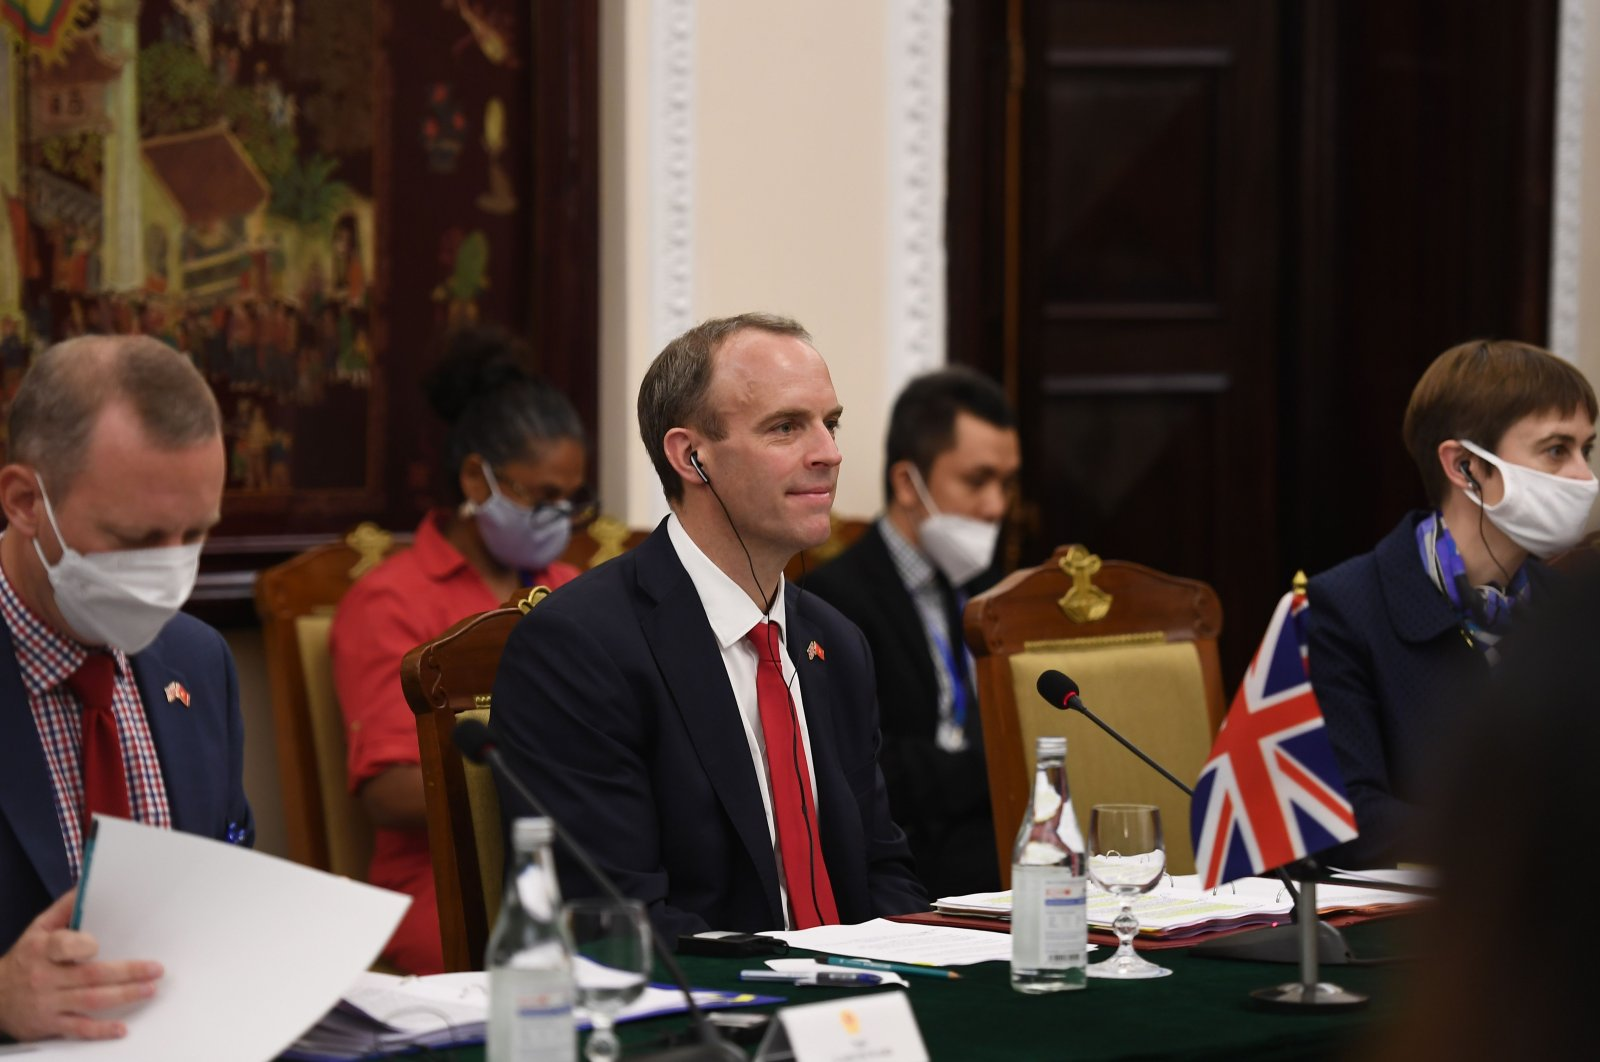 Britain's Foreign Secretary Dominic Raab (C) meets his Vietnamese counterpart Pham Binh Minh at the Government Guesthouse in Hanoi on Sept. 30, 2020. (AFP Photo)